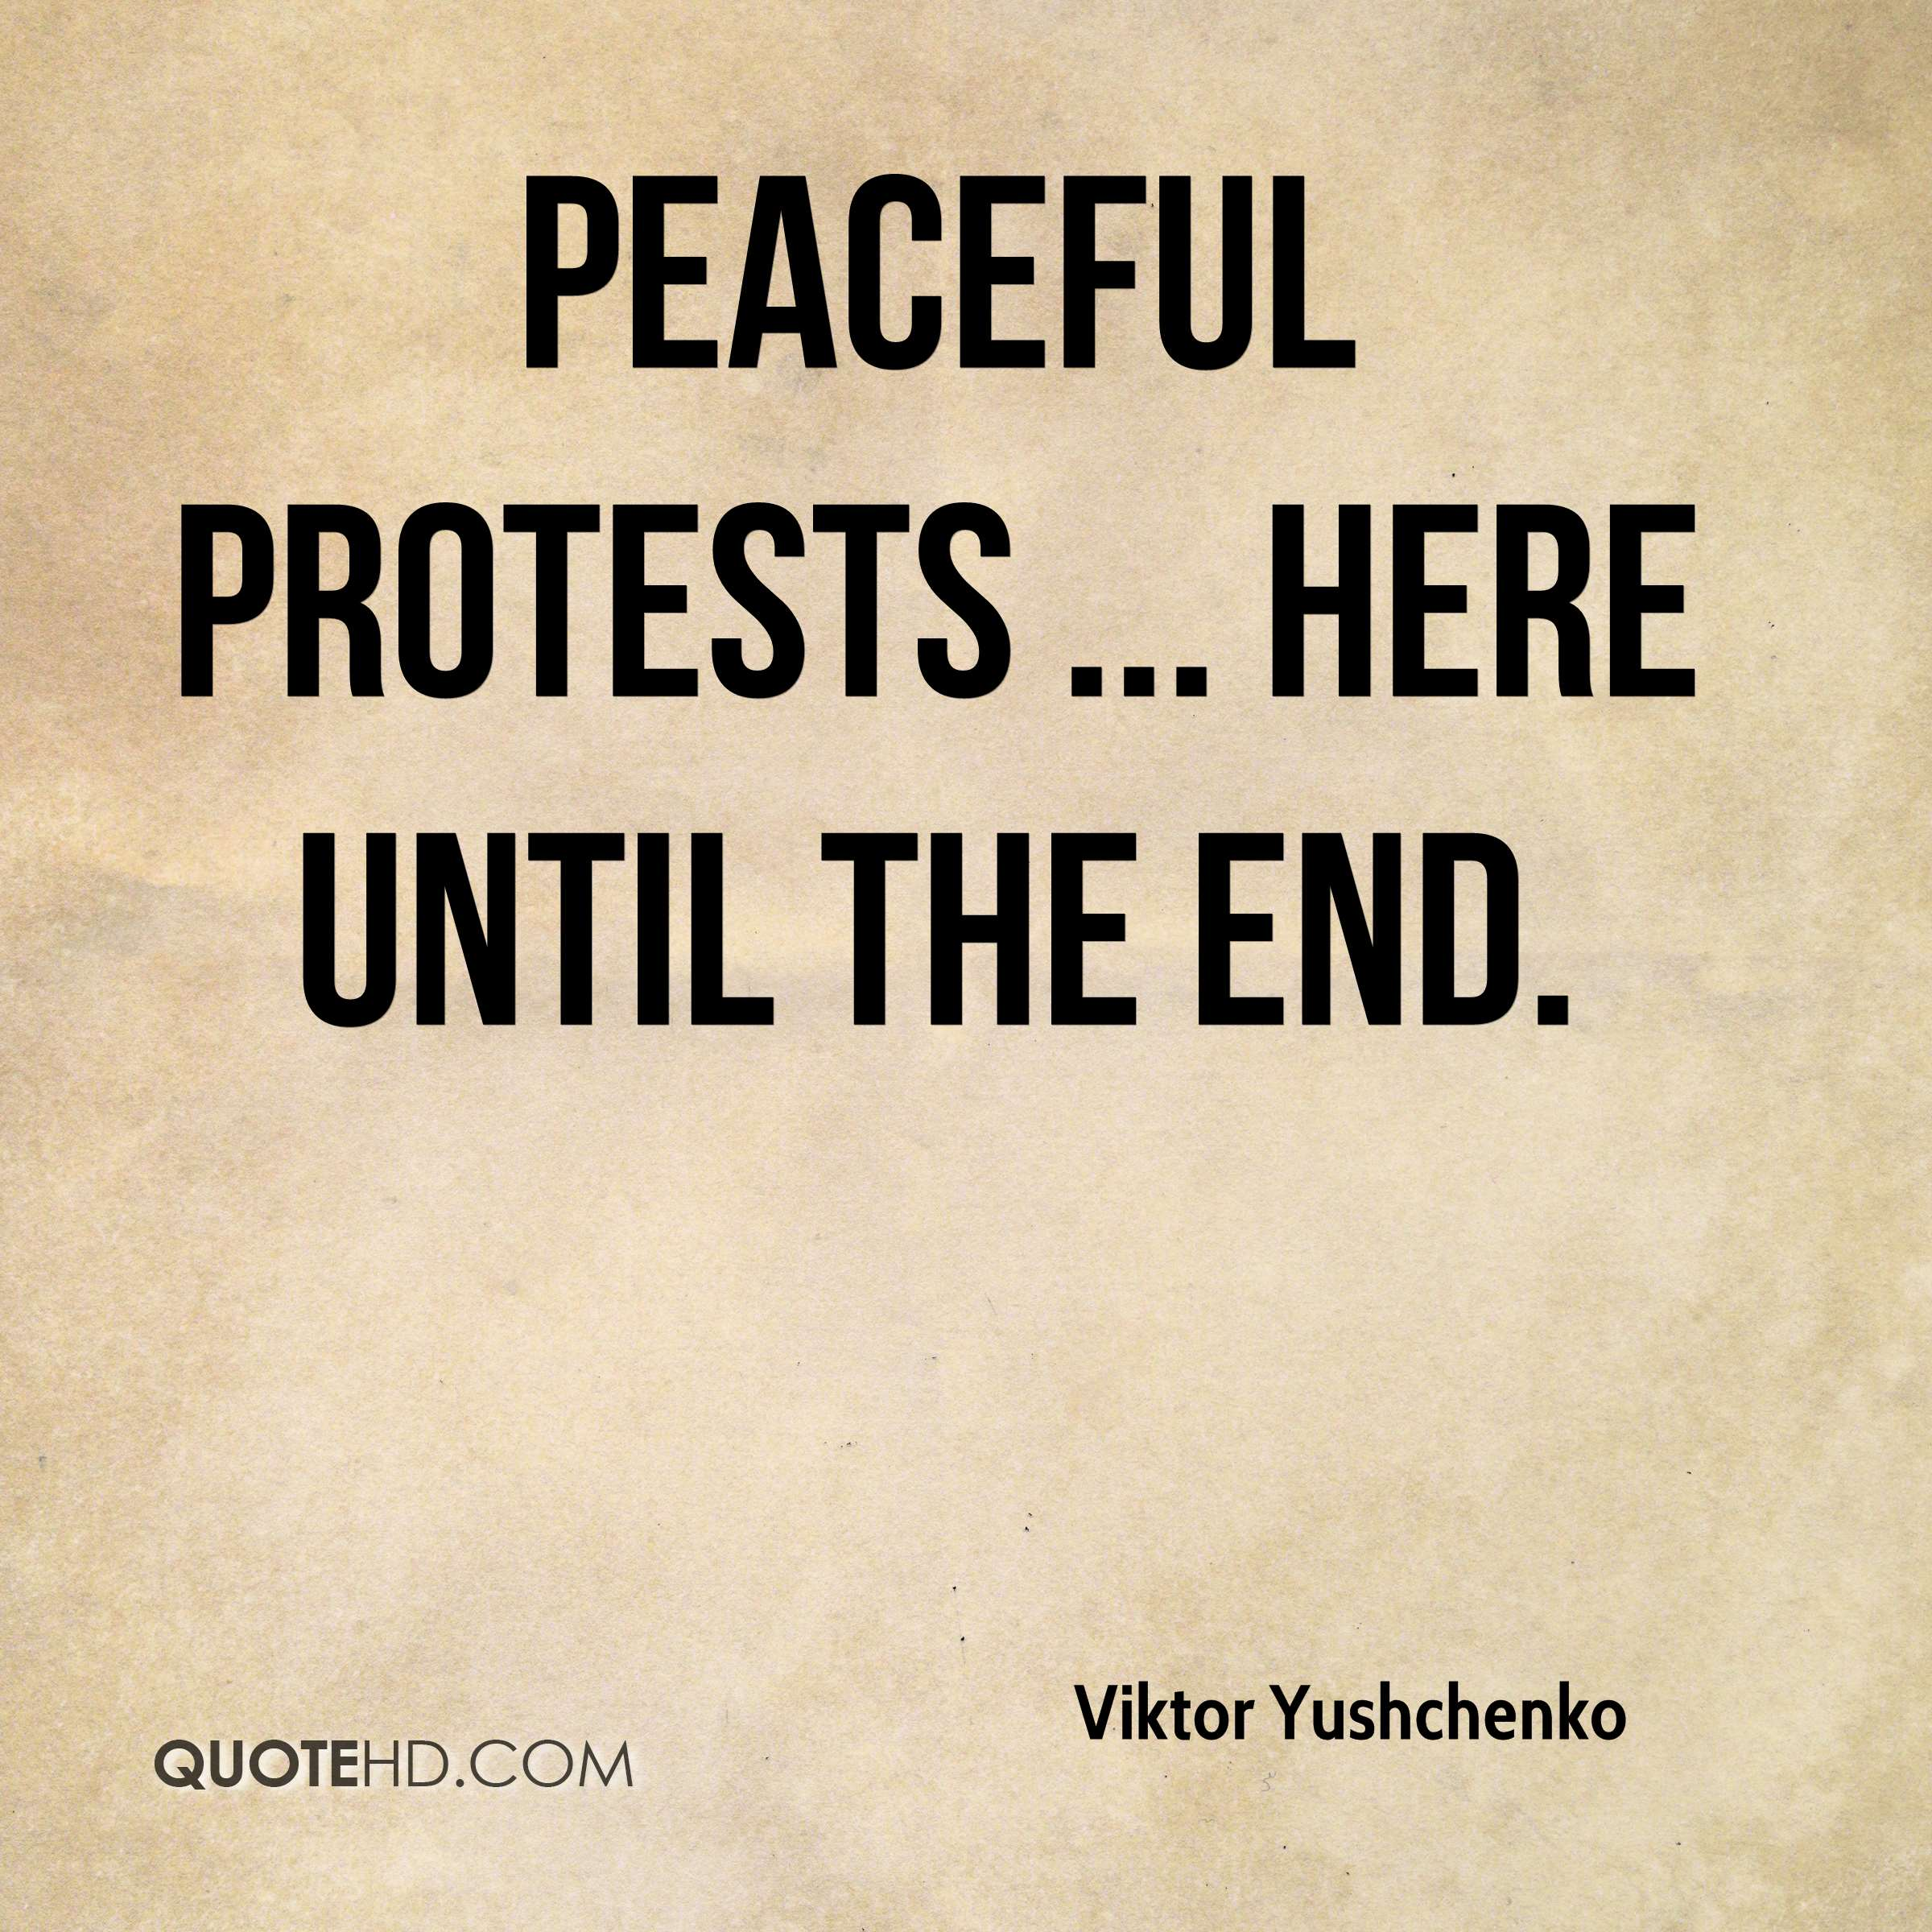 peaceful protests ... here until the end.